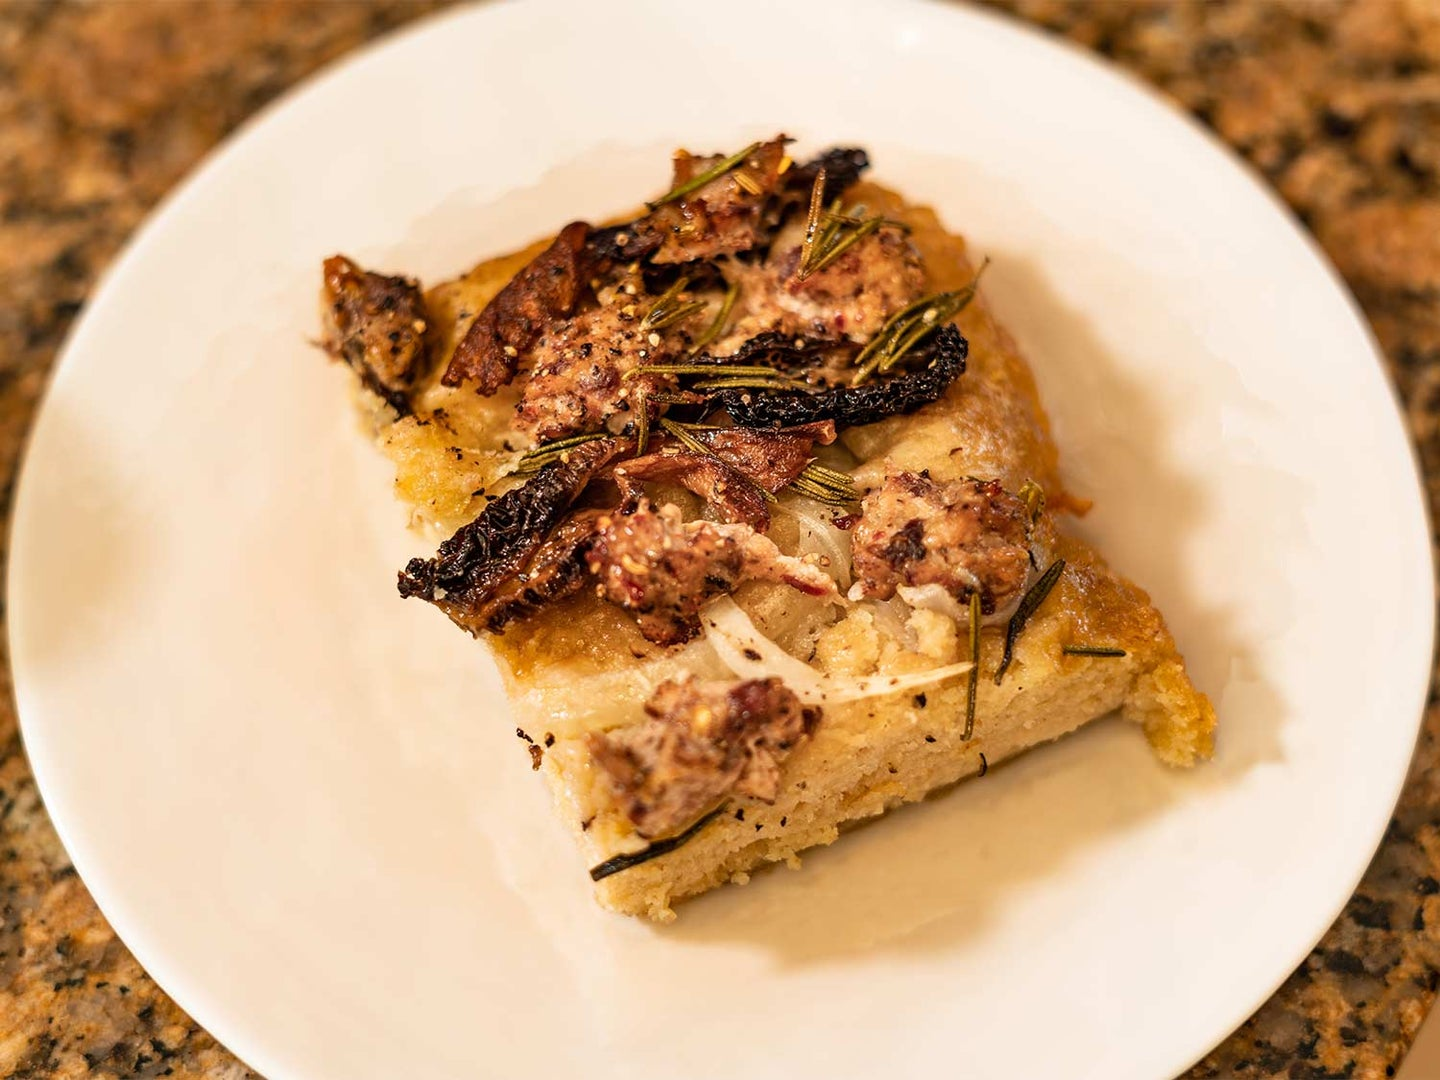 Homemade focaccia topped with morels and wild-turkey sausage.